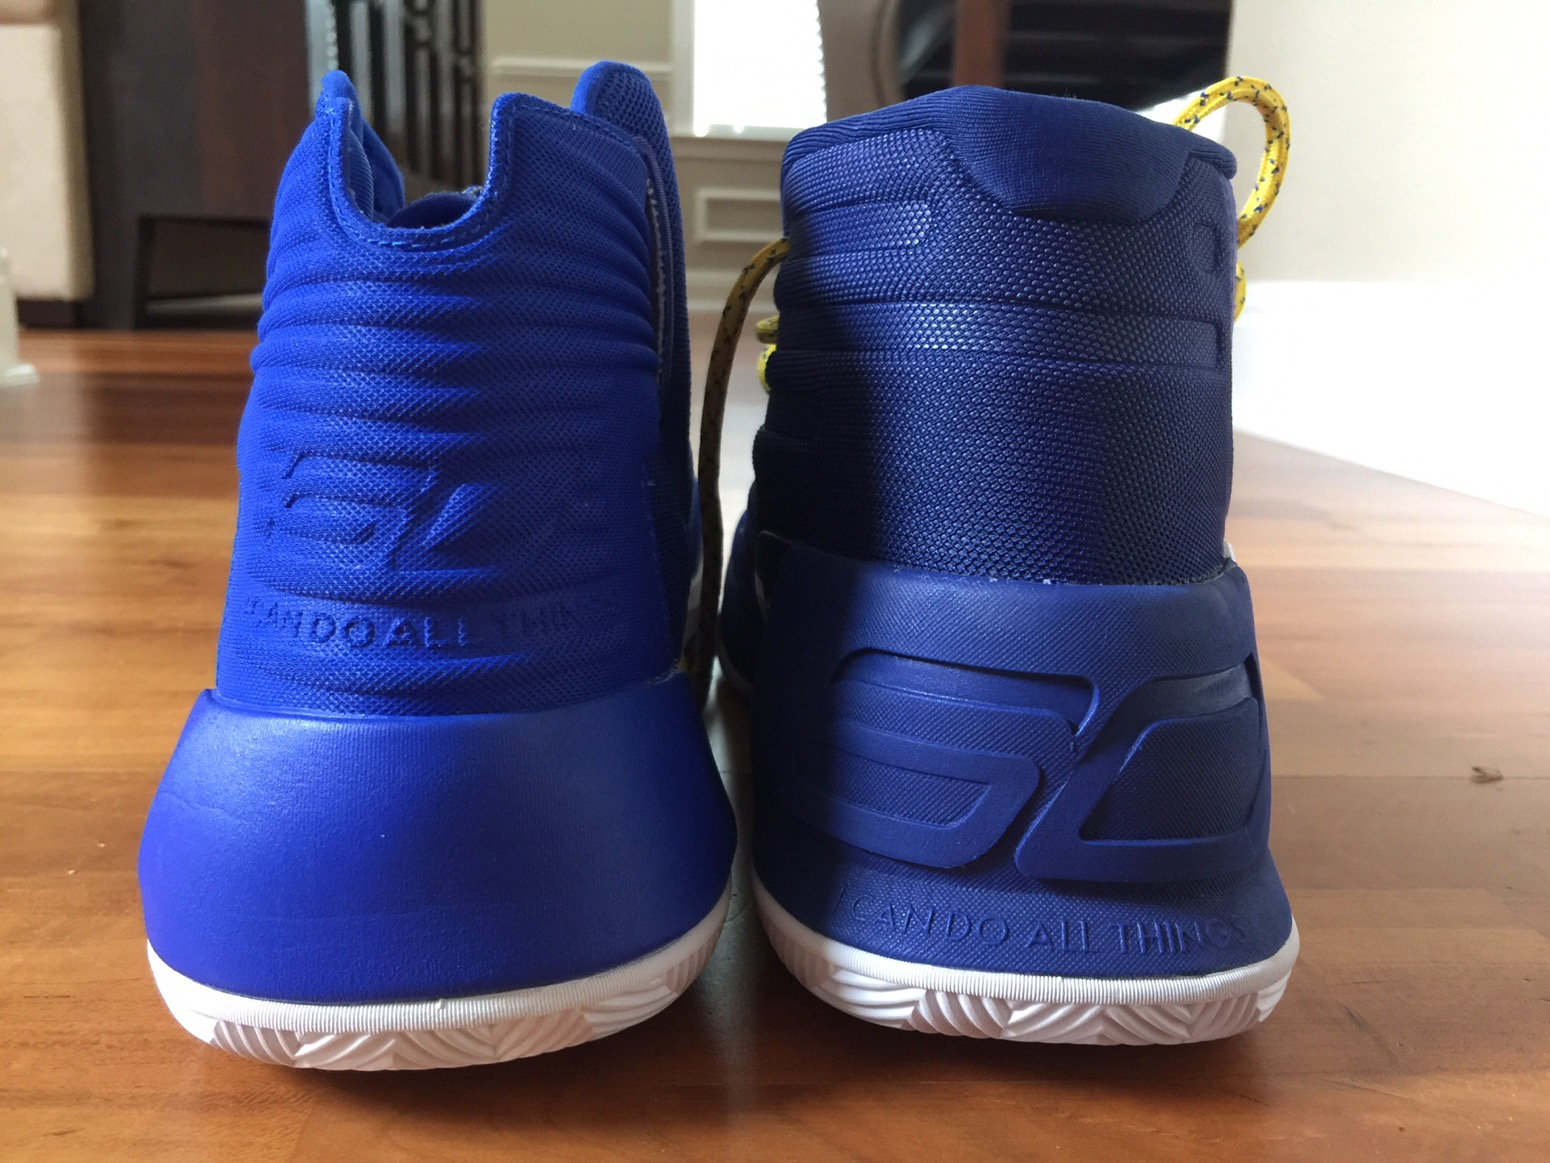 6a9239608d10 Under Armour Curry 3Zero Performance Analysis and Review